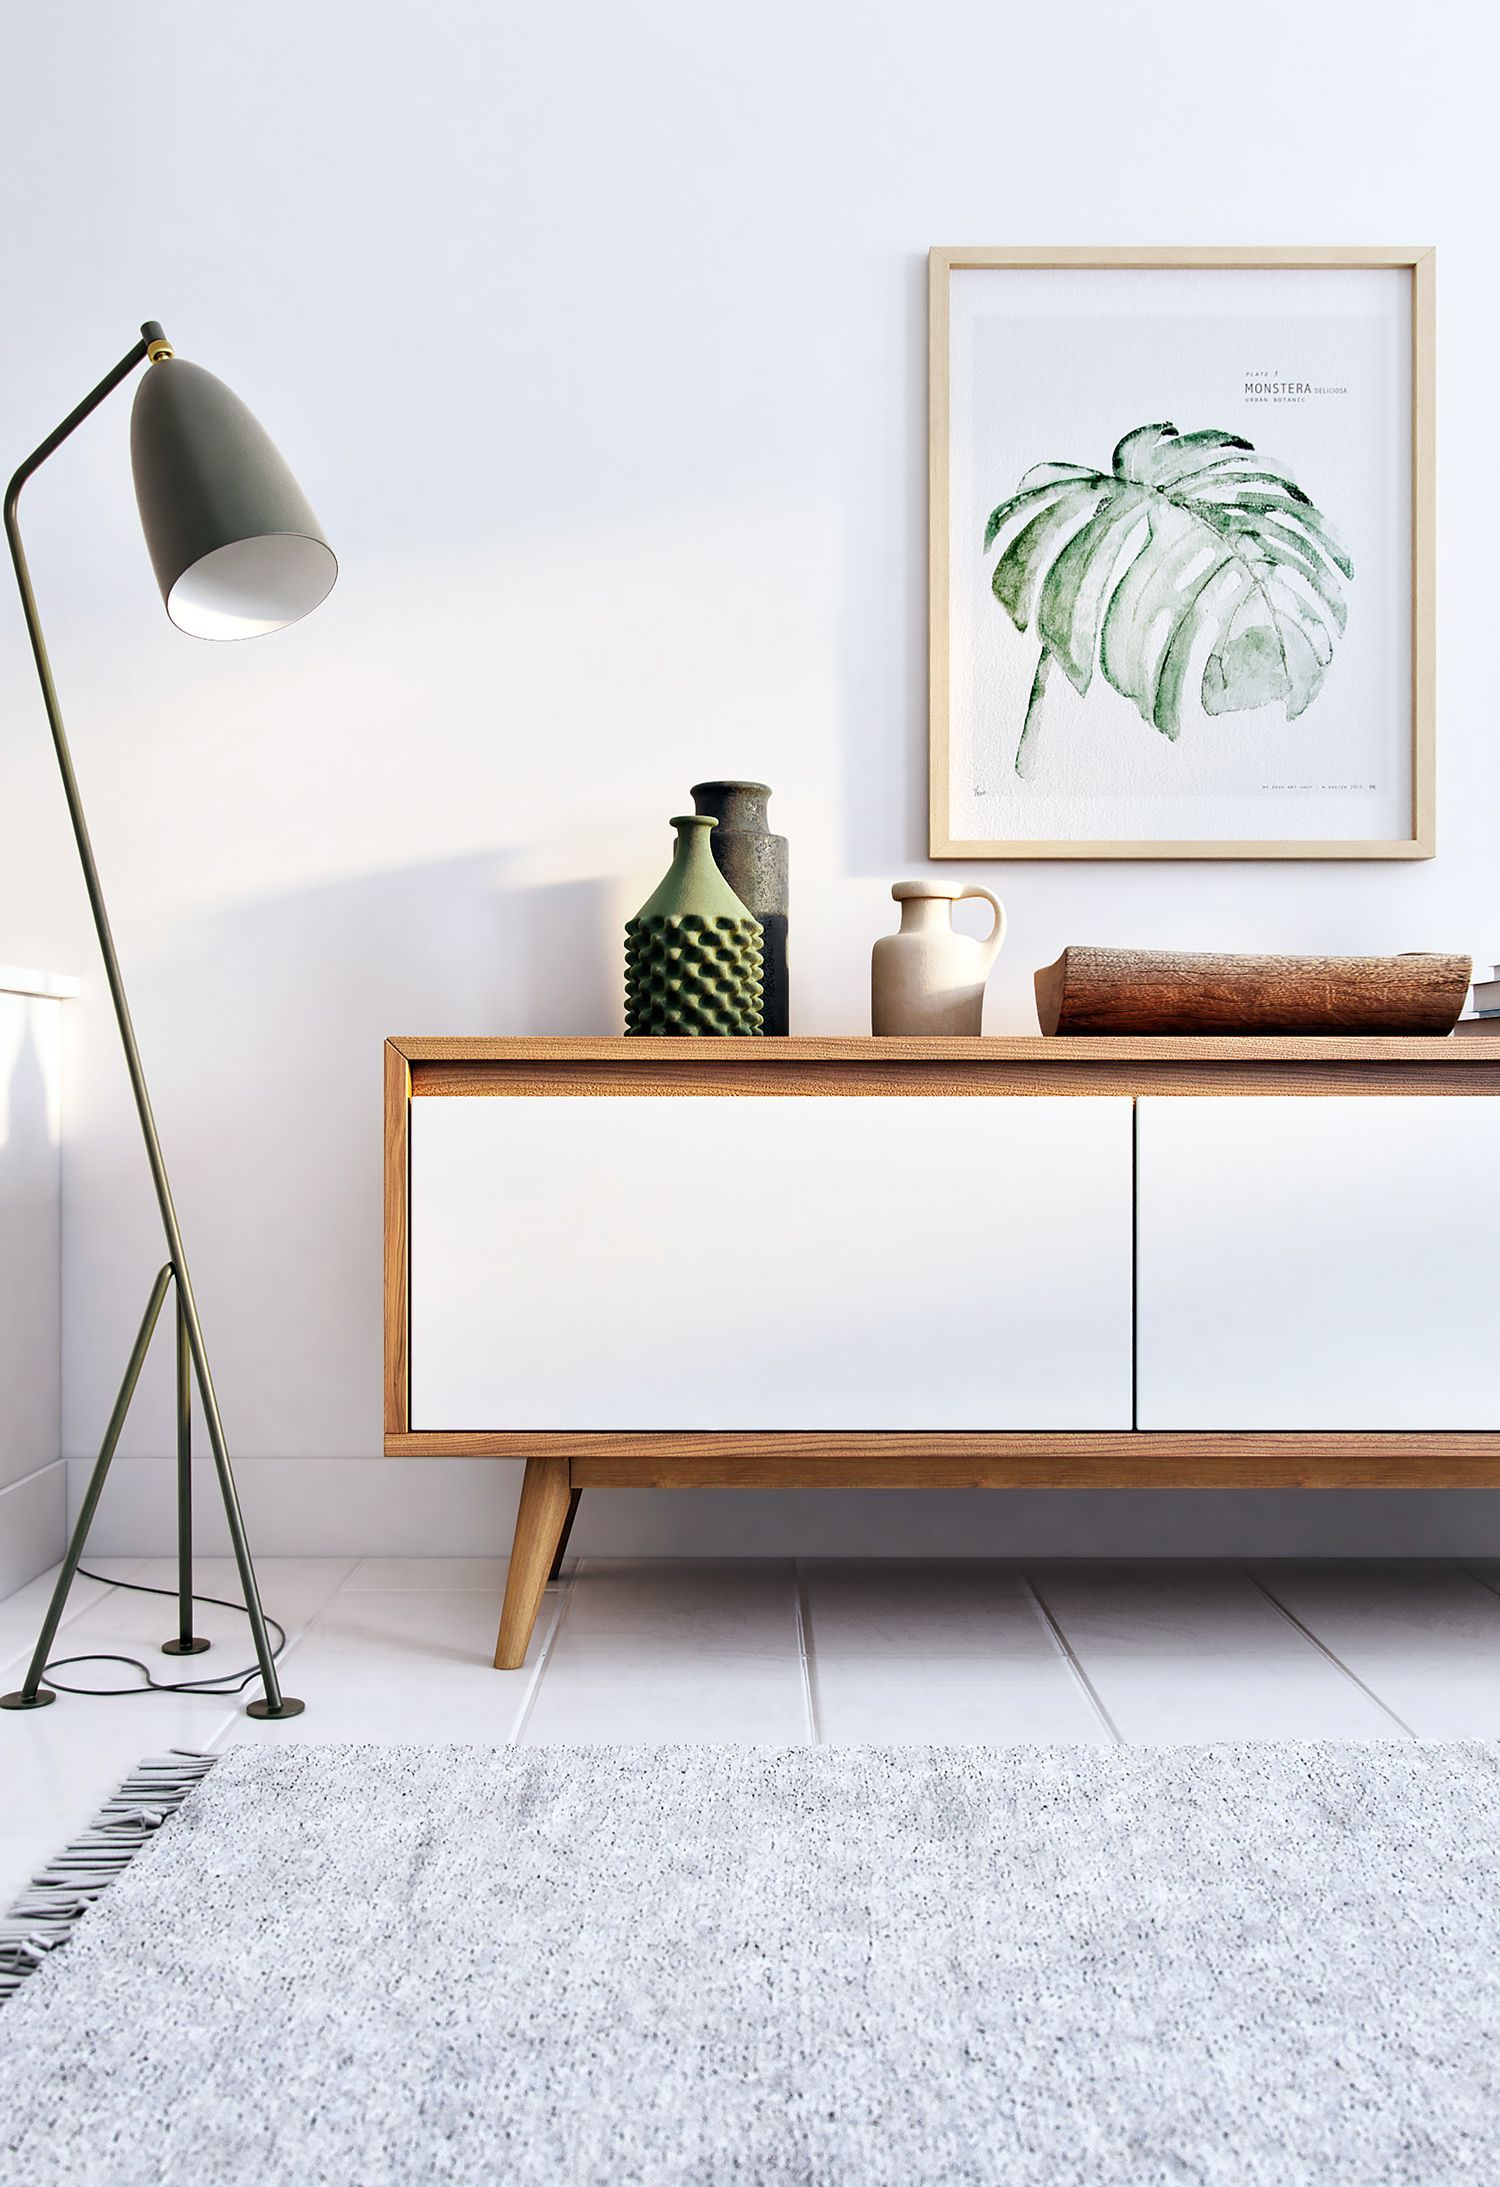 Lucas Tv Stand Rove Concepts Rove Concepts Mid Century Furniture Tv Stand Decor Decor Mid Century Modern